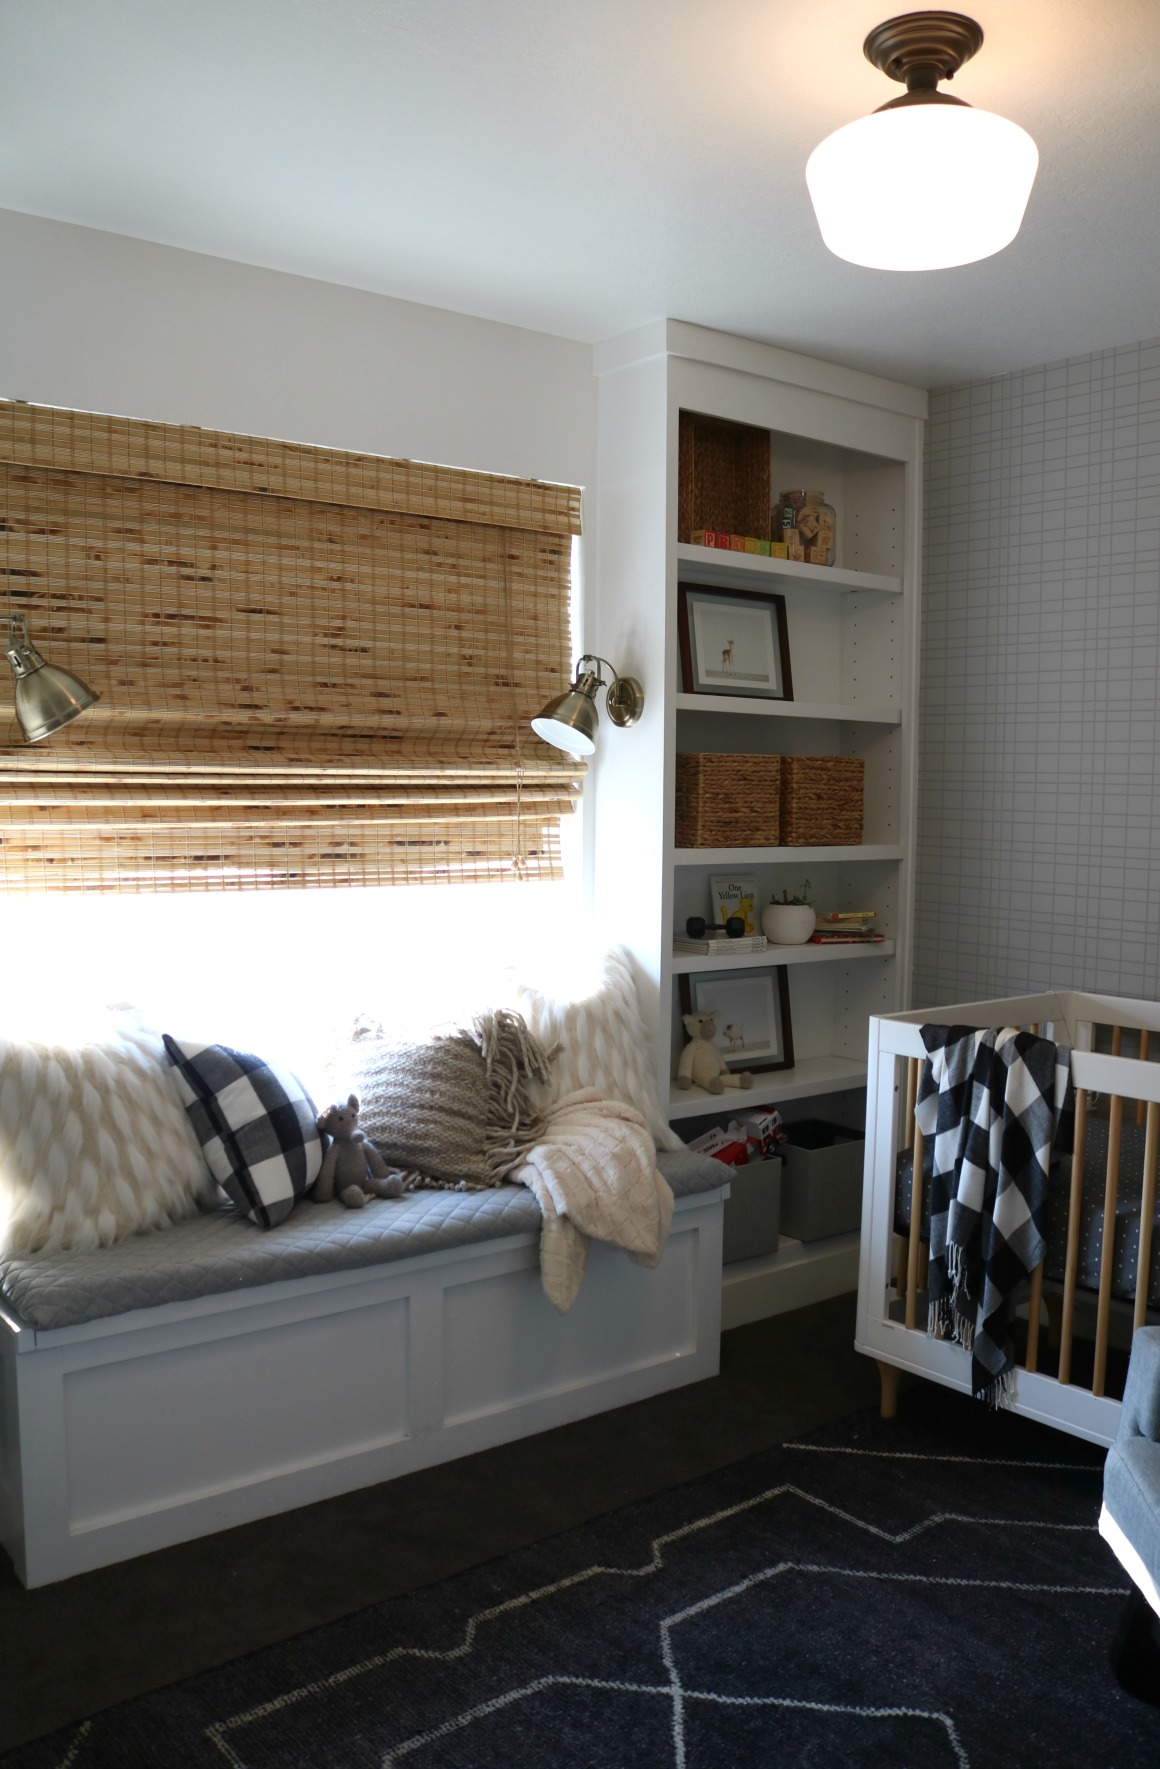 Affordable Bamboo Woven Shades And Fabric Roman Shades Ultimate Guide Nesting With Grace